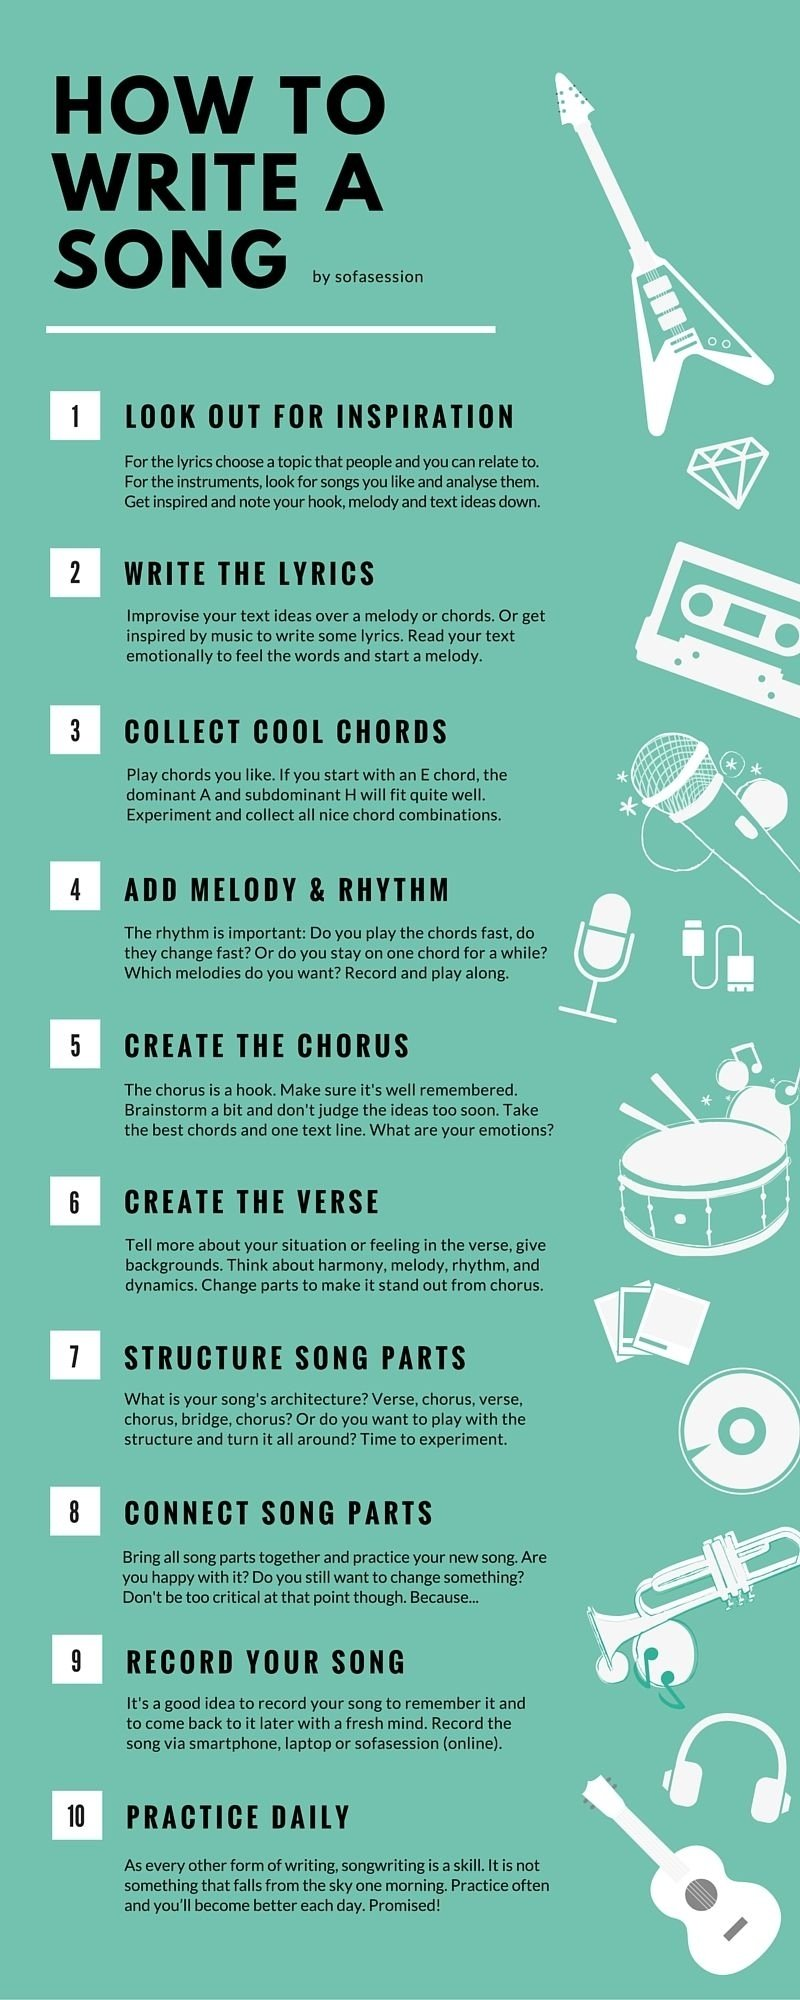 10 Awesome Ideas To Write A Song how to write a song in 10 steps as a beginner the infographic shows 2021